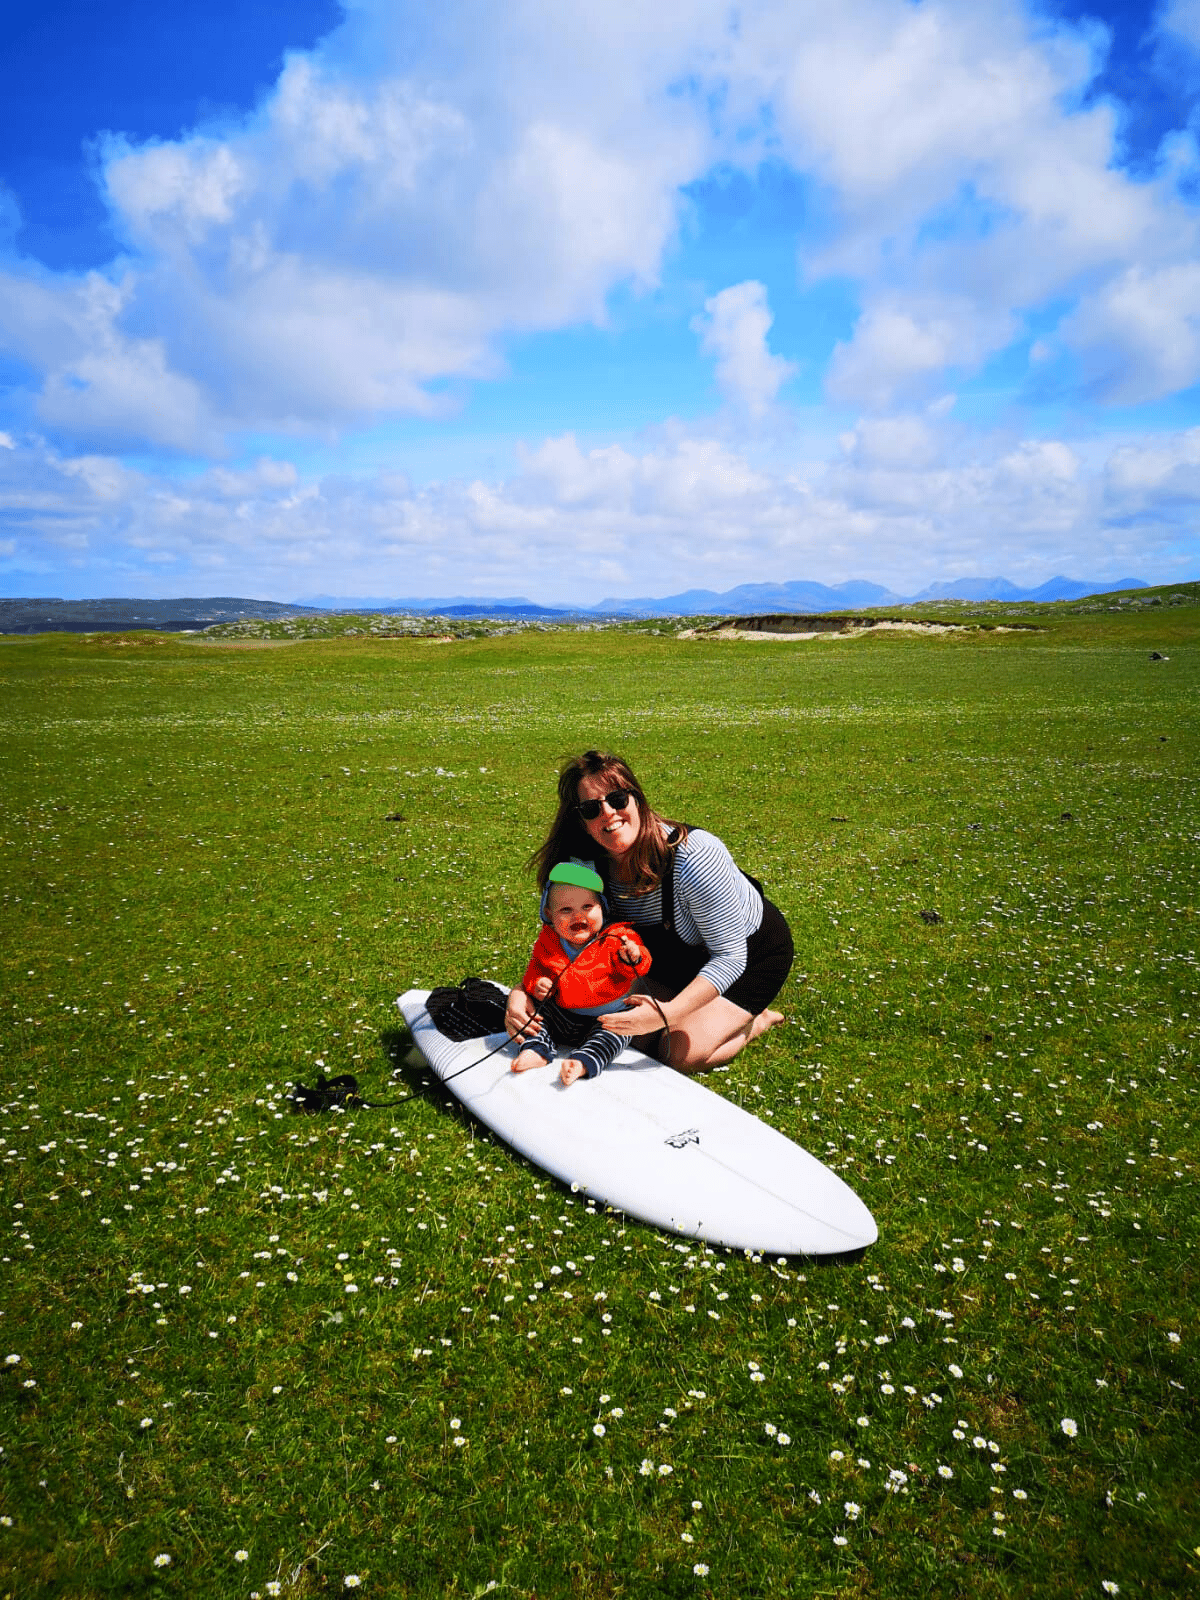 women kneeling on the grass next to a baby sitting on a large surfboard